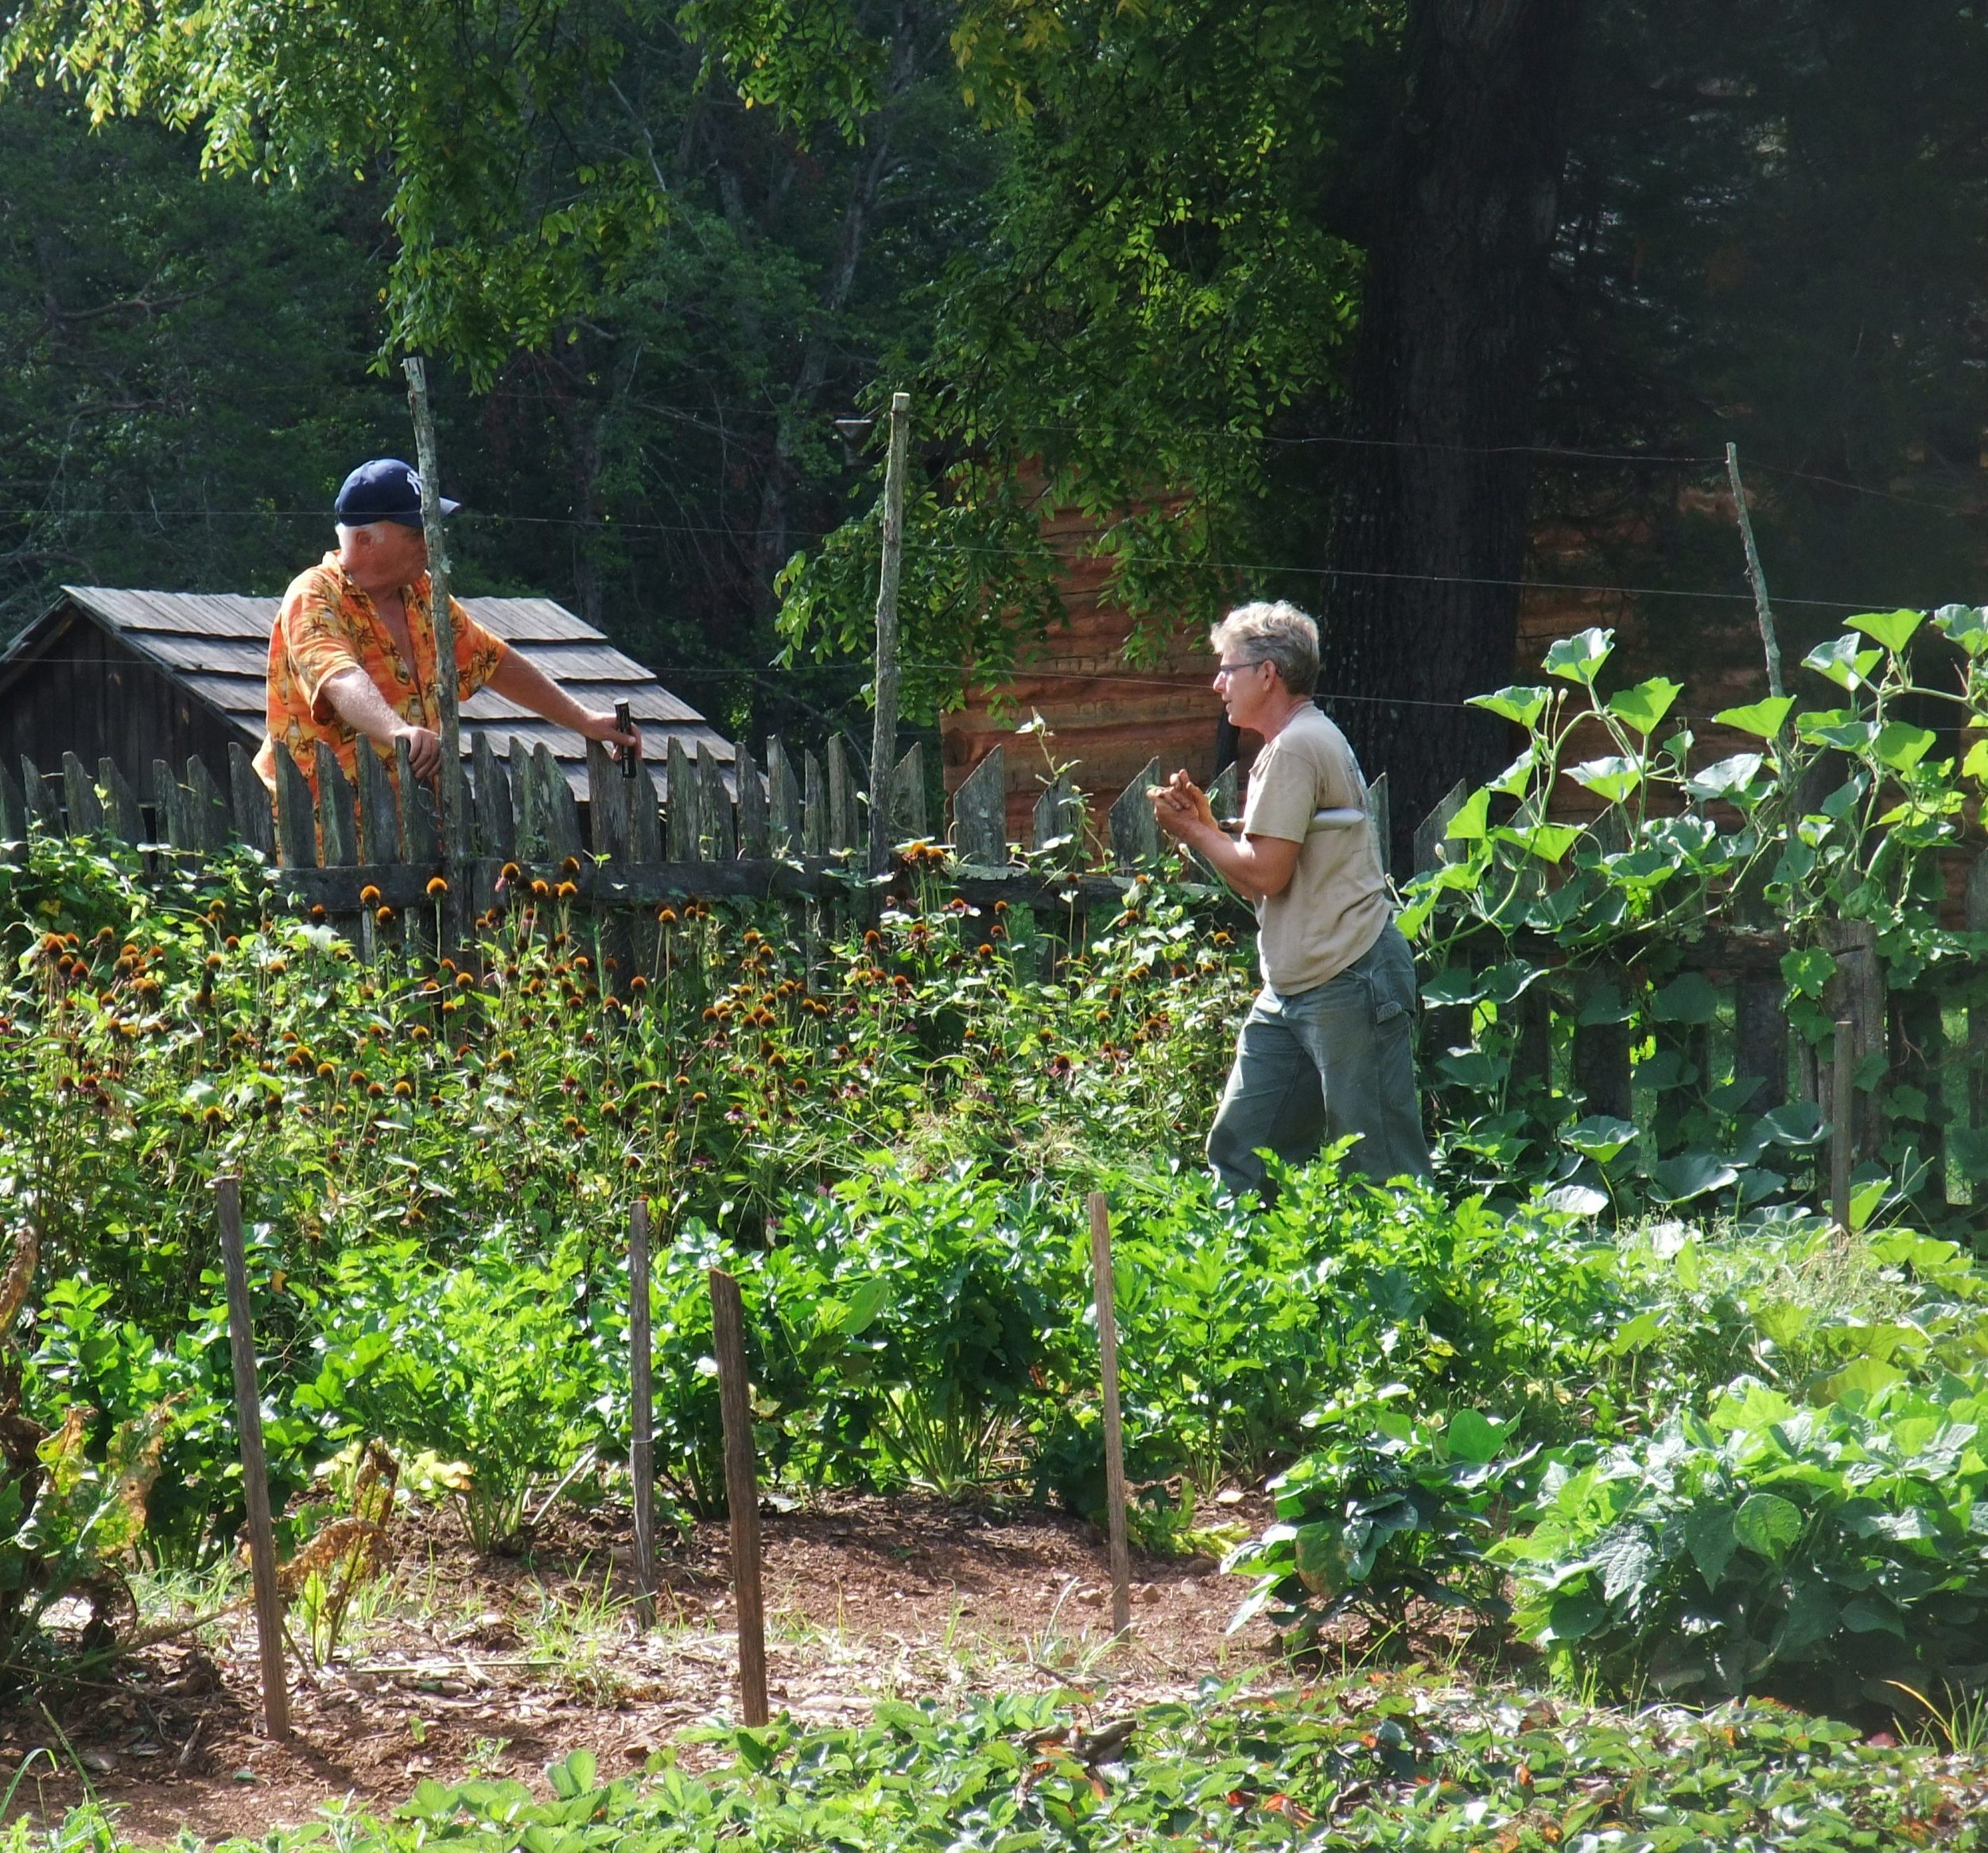 Master Gardeners and Park Rangers use the garden to engage and educate the public about gardening during the Civil War .